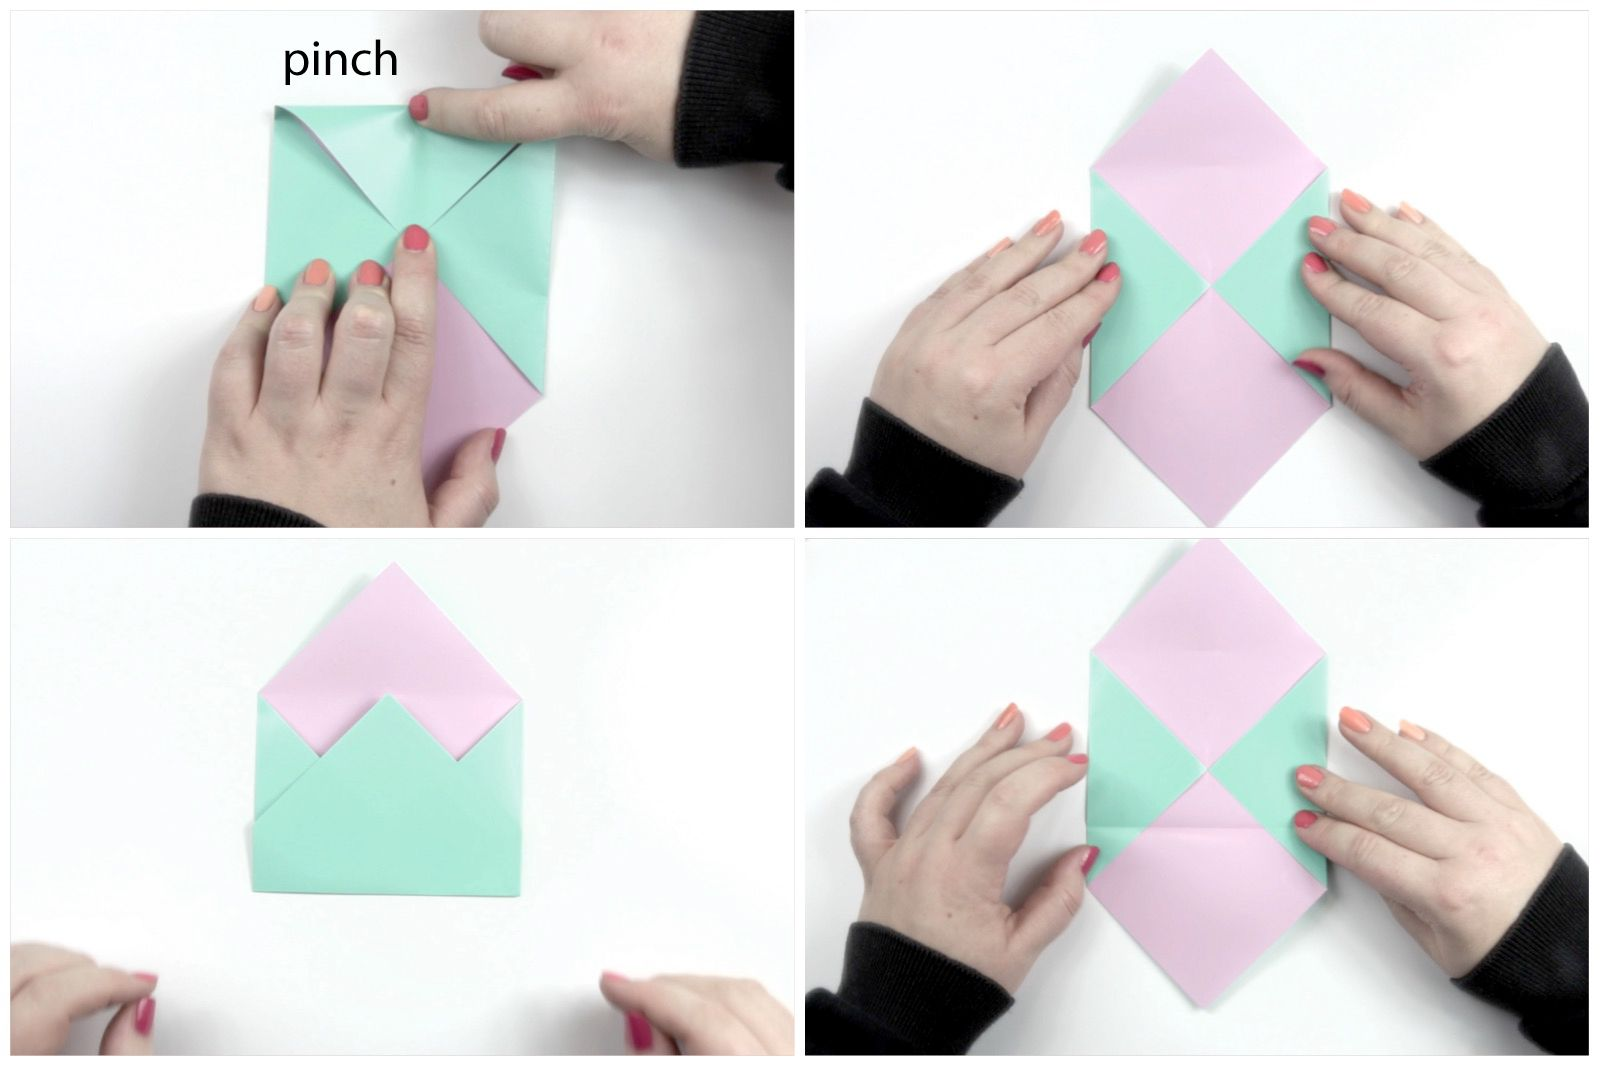 How to Make a Small Paper Envelope Without Glue - Easy Tutorials ... | 1066x1600